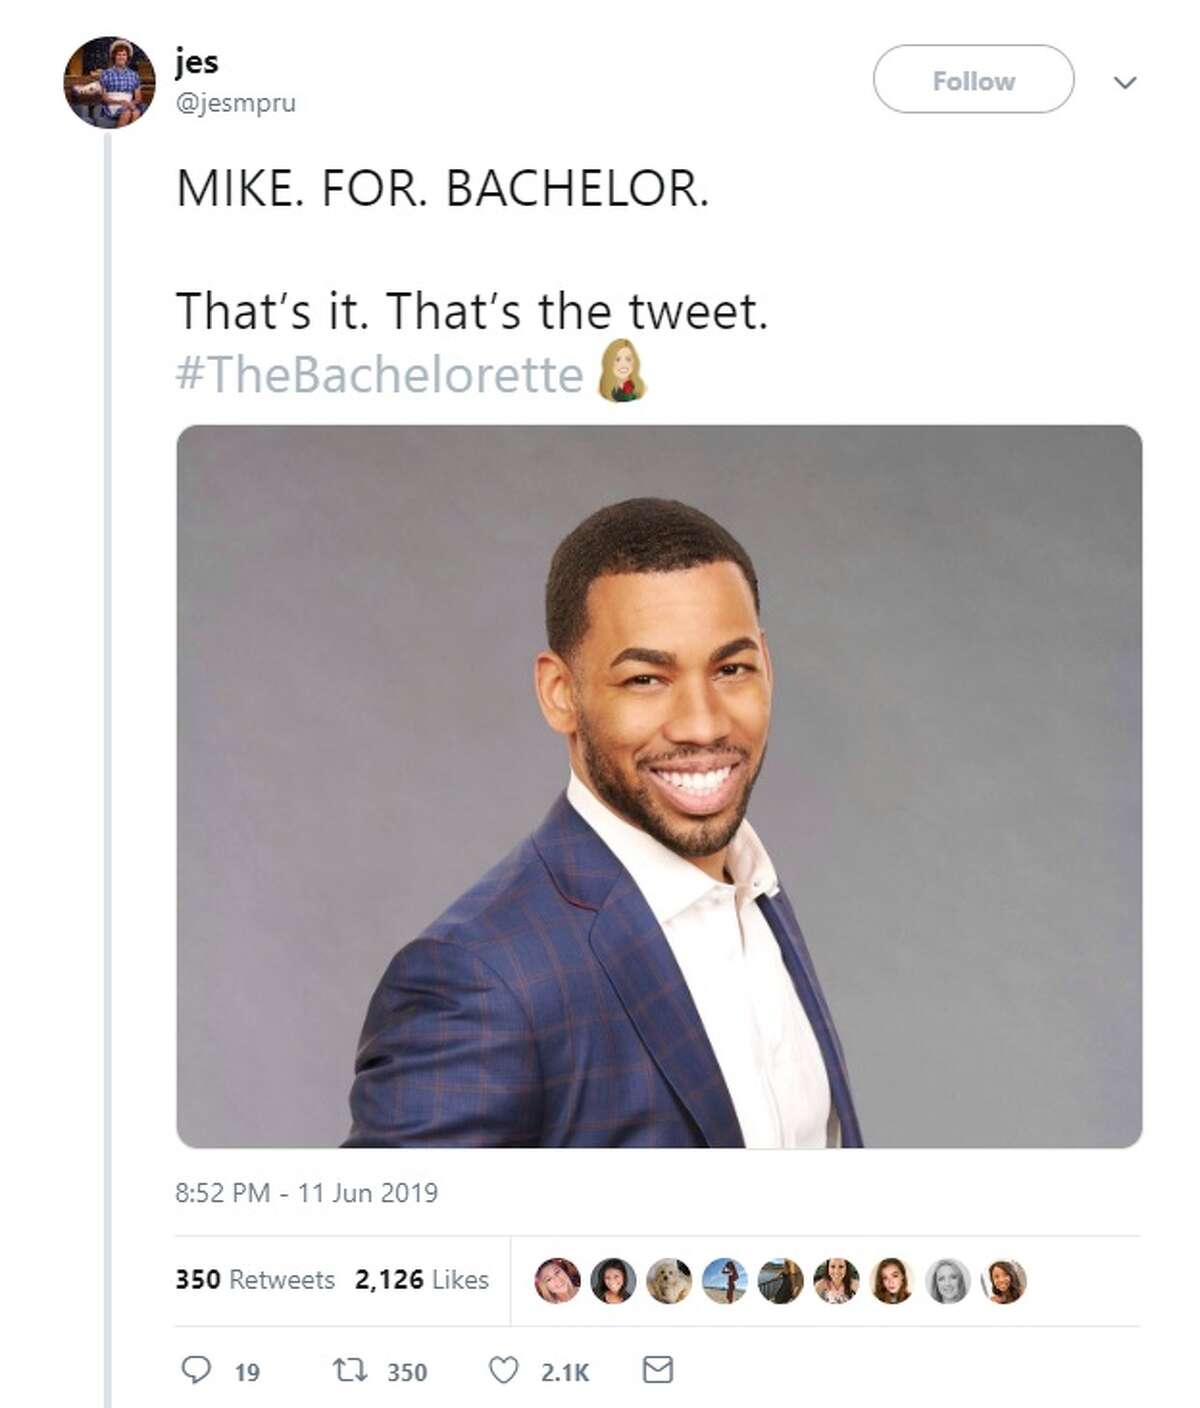 @jesmpru campaigns for Mike to be the next bachelor on Twitter.